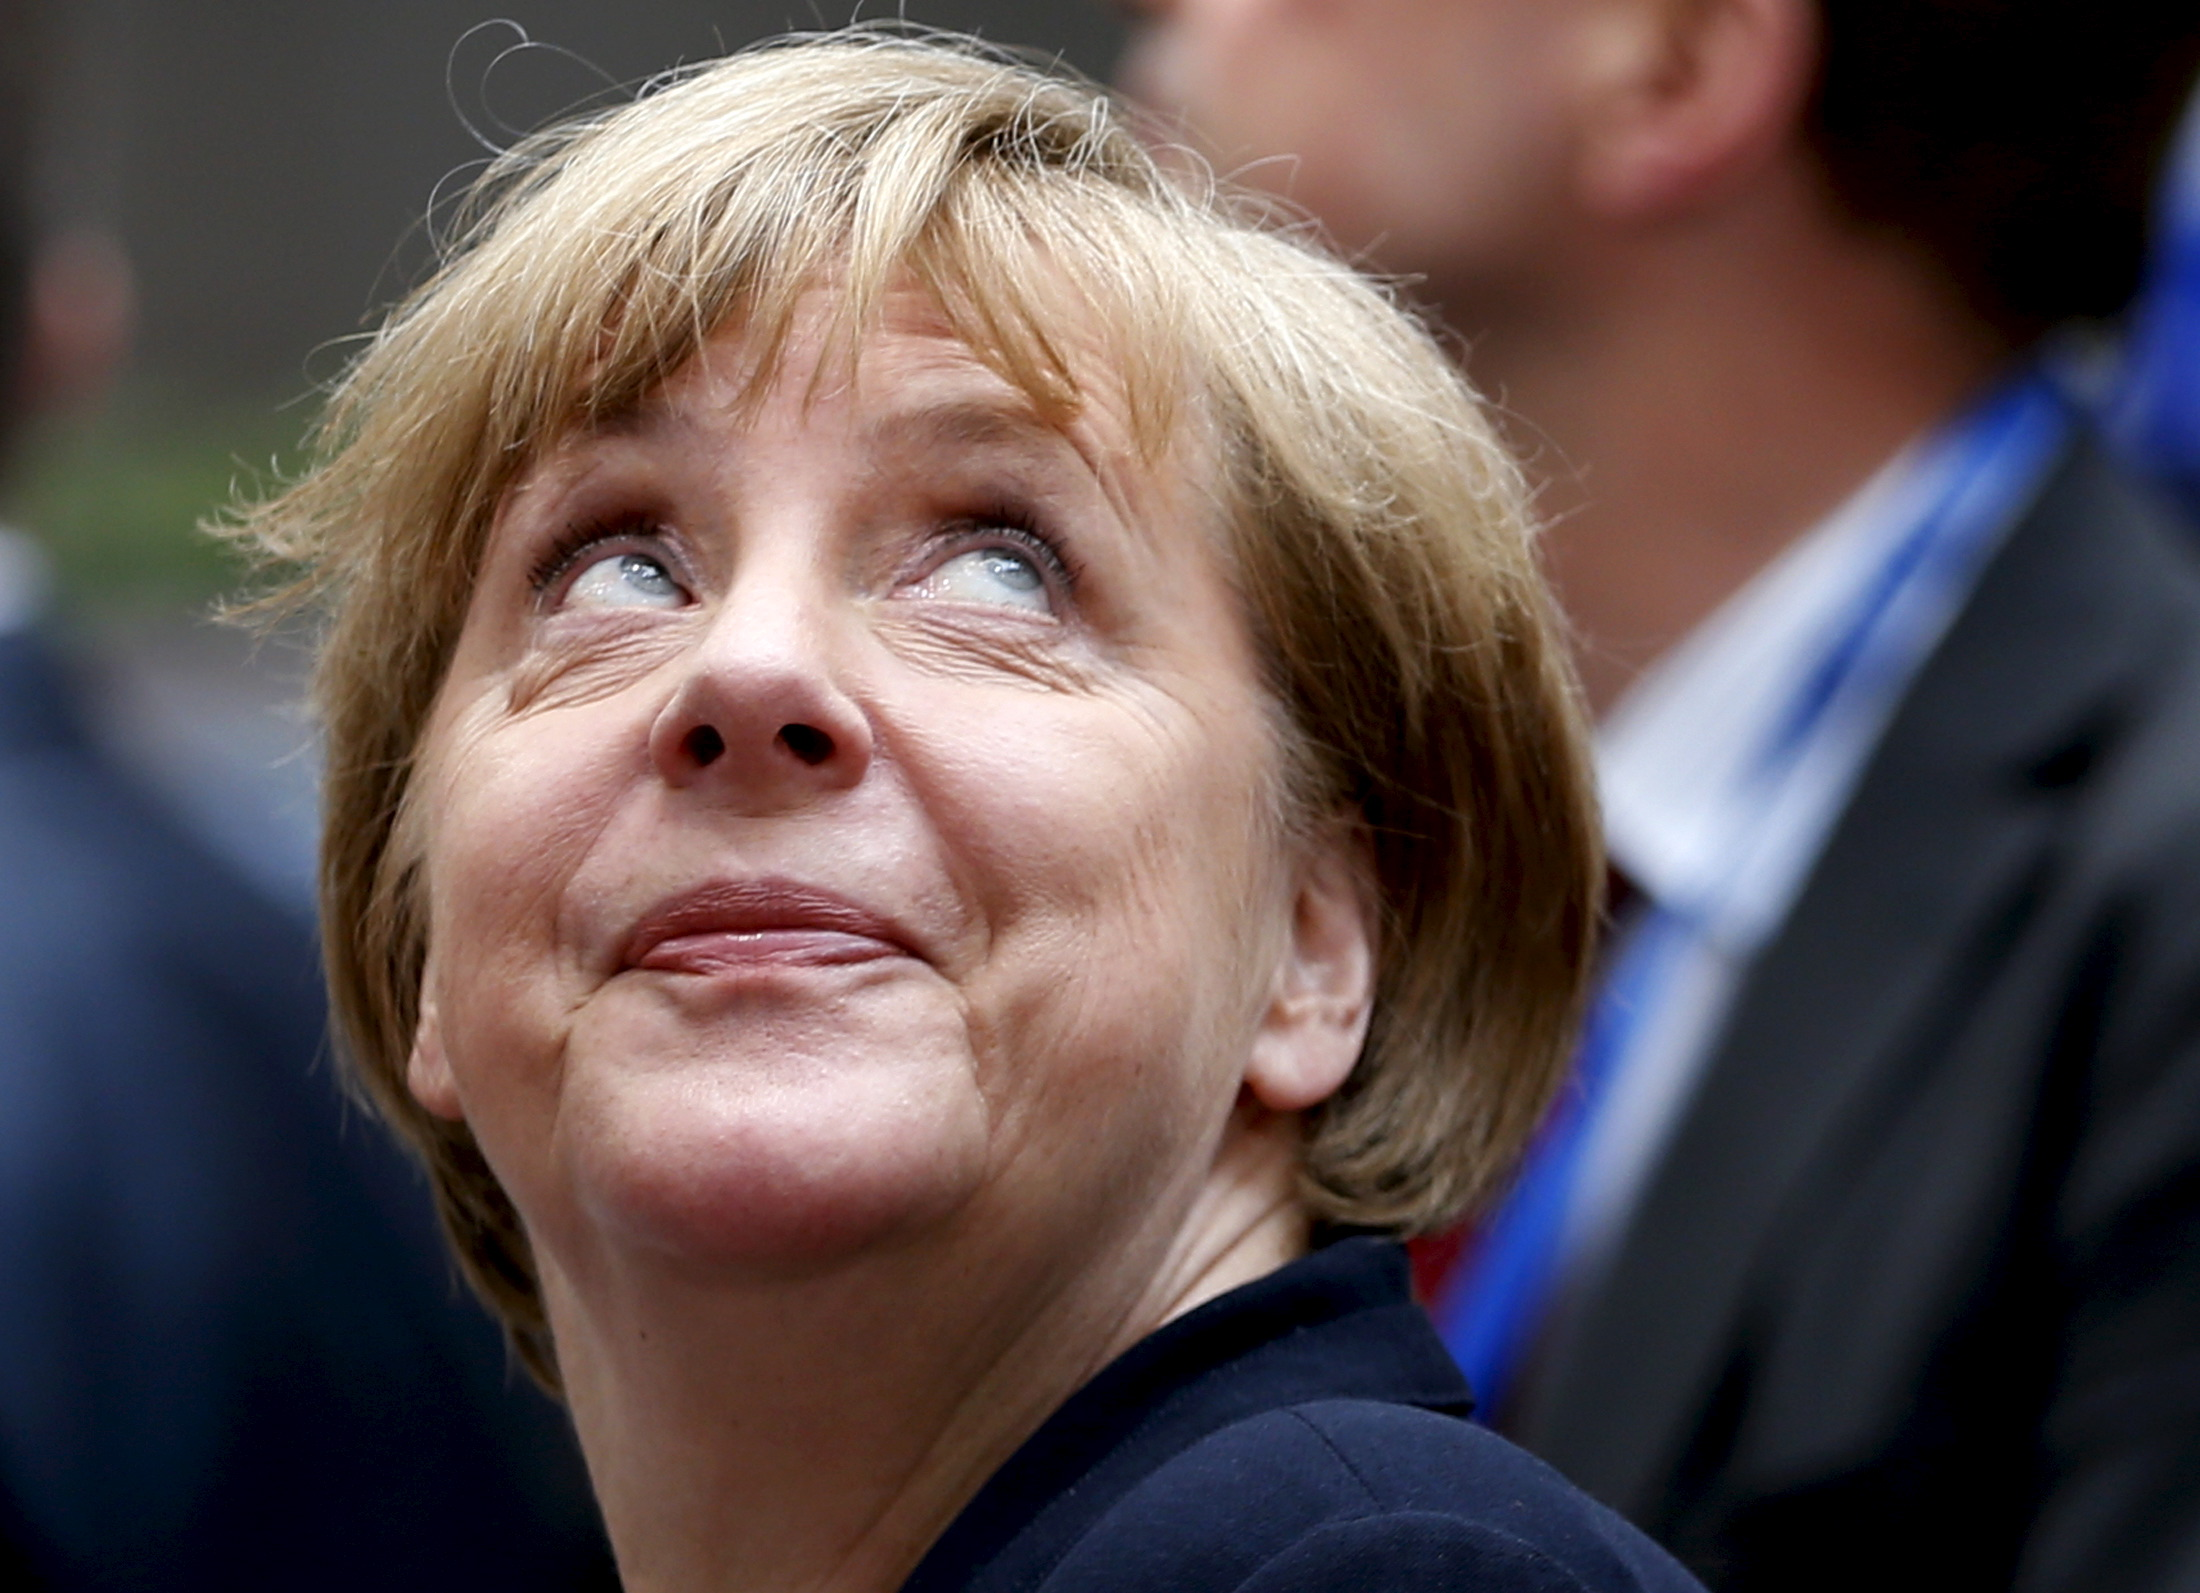 Germany's Chancellor Angela Merkel looks up as she arrives at an emergency euro zone summit in Brussels, Belgium, July 7, 2015. Greek Prime Minister Alexis Tsipras had a final chance to present credible reform proposals to an emergency euro zone summit on Tuesday to persuade skeptical creditors to reopen aid talks before his country's banks run out of money.